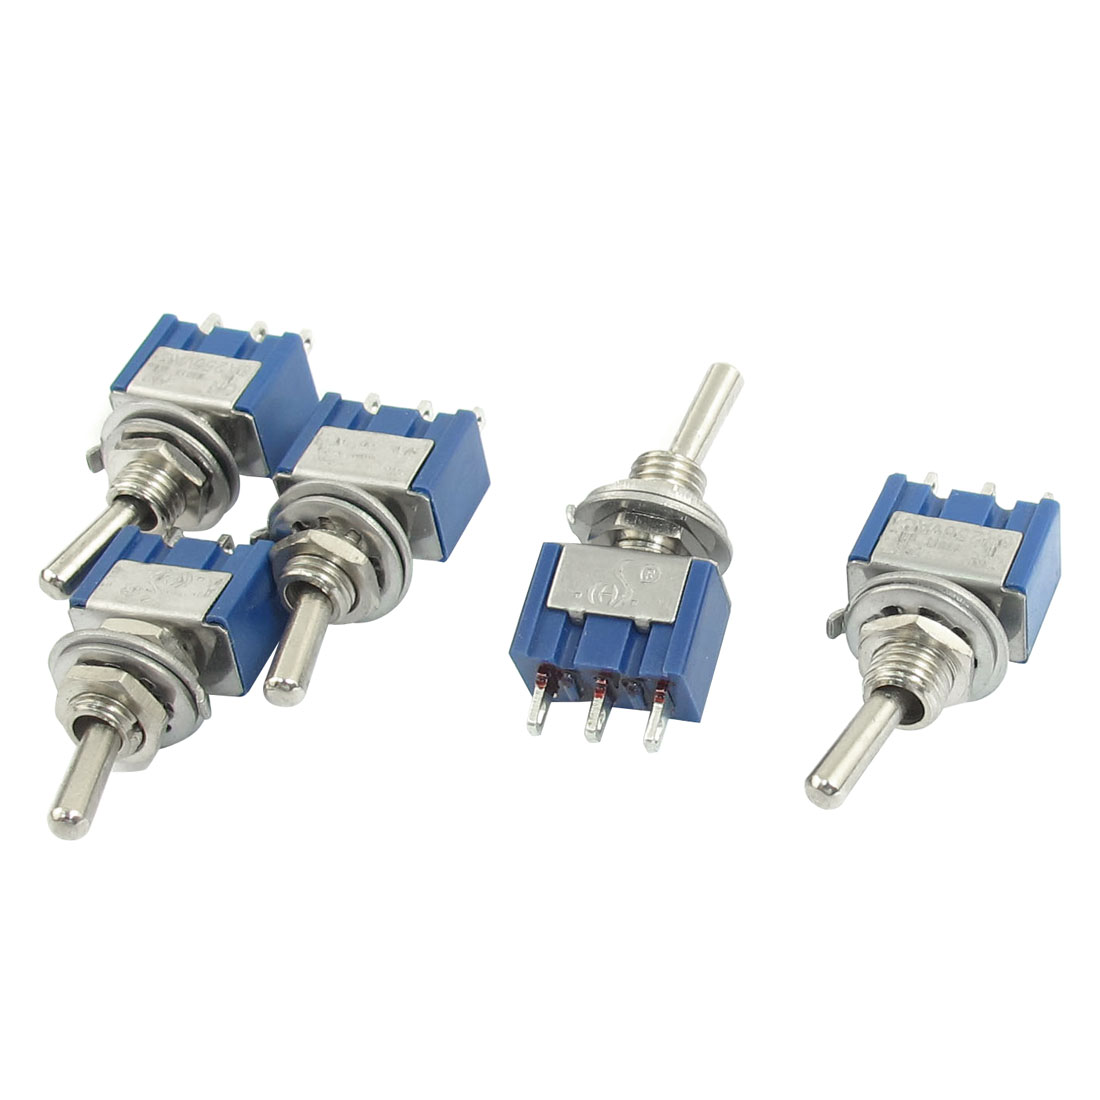 AC 250V 6A SPDT 3P ON-OFF 2 Positions Locking Rocker Toggle Switch 5pcs Blue